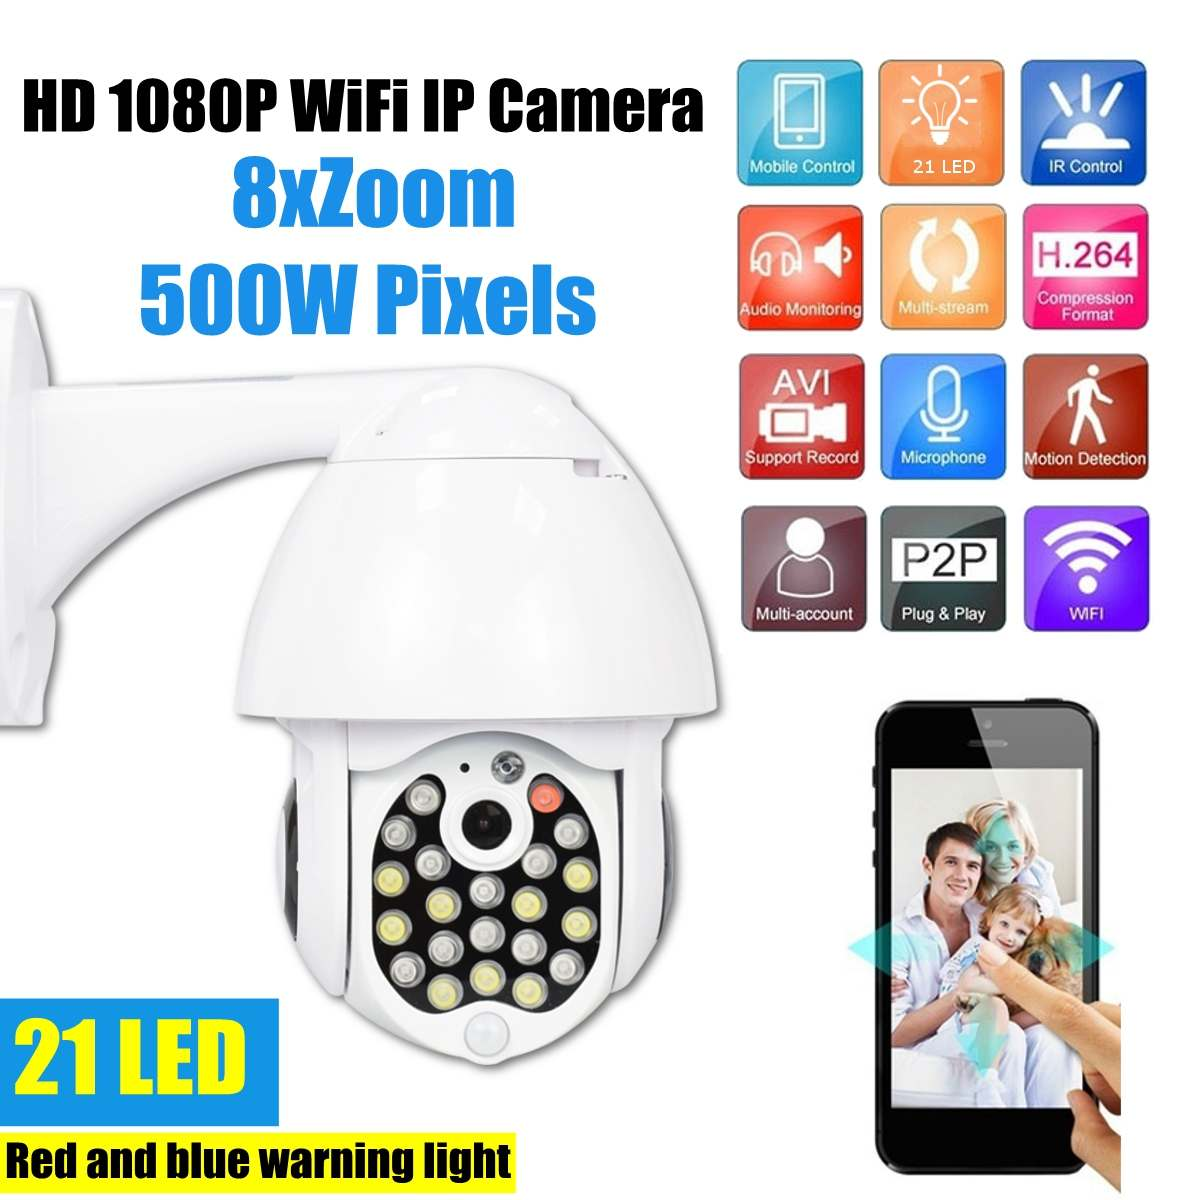 5.0MP HD 1080P Wifi 21 LED IP Camera Outdoor Security Speed Dome Camera IR 30M CCTV Surveillance Cameras 8X Digital Zoom